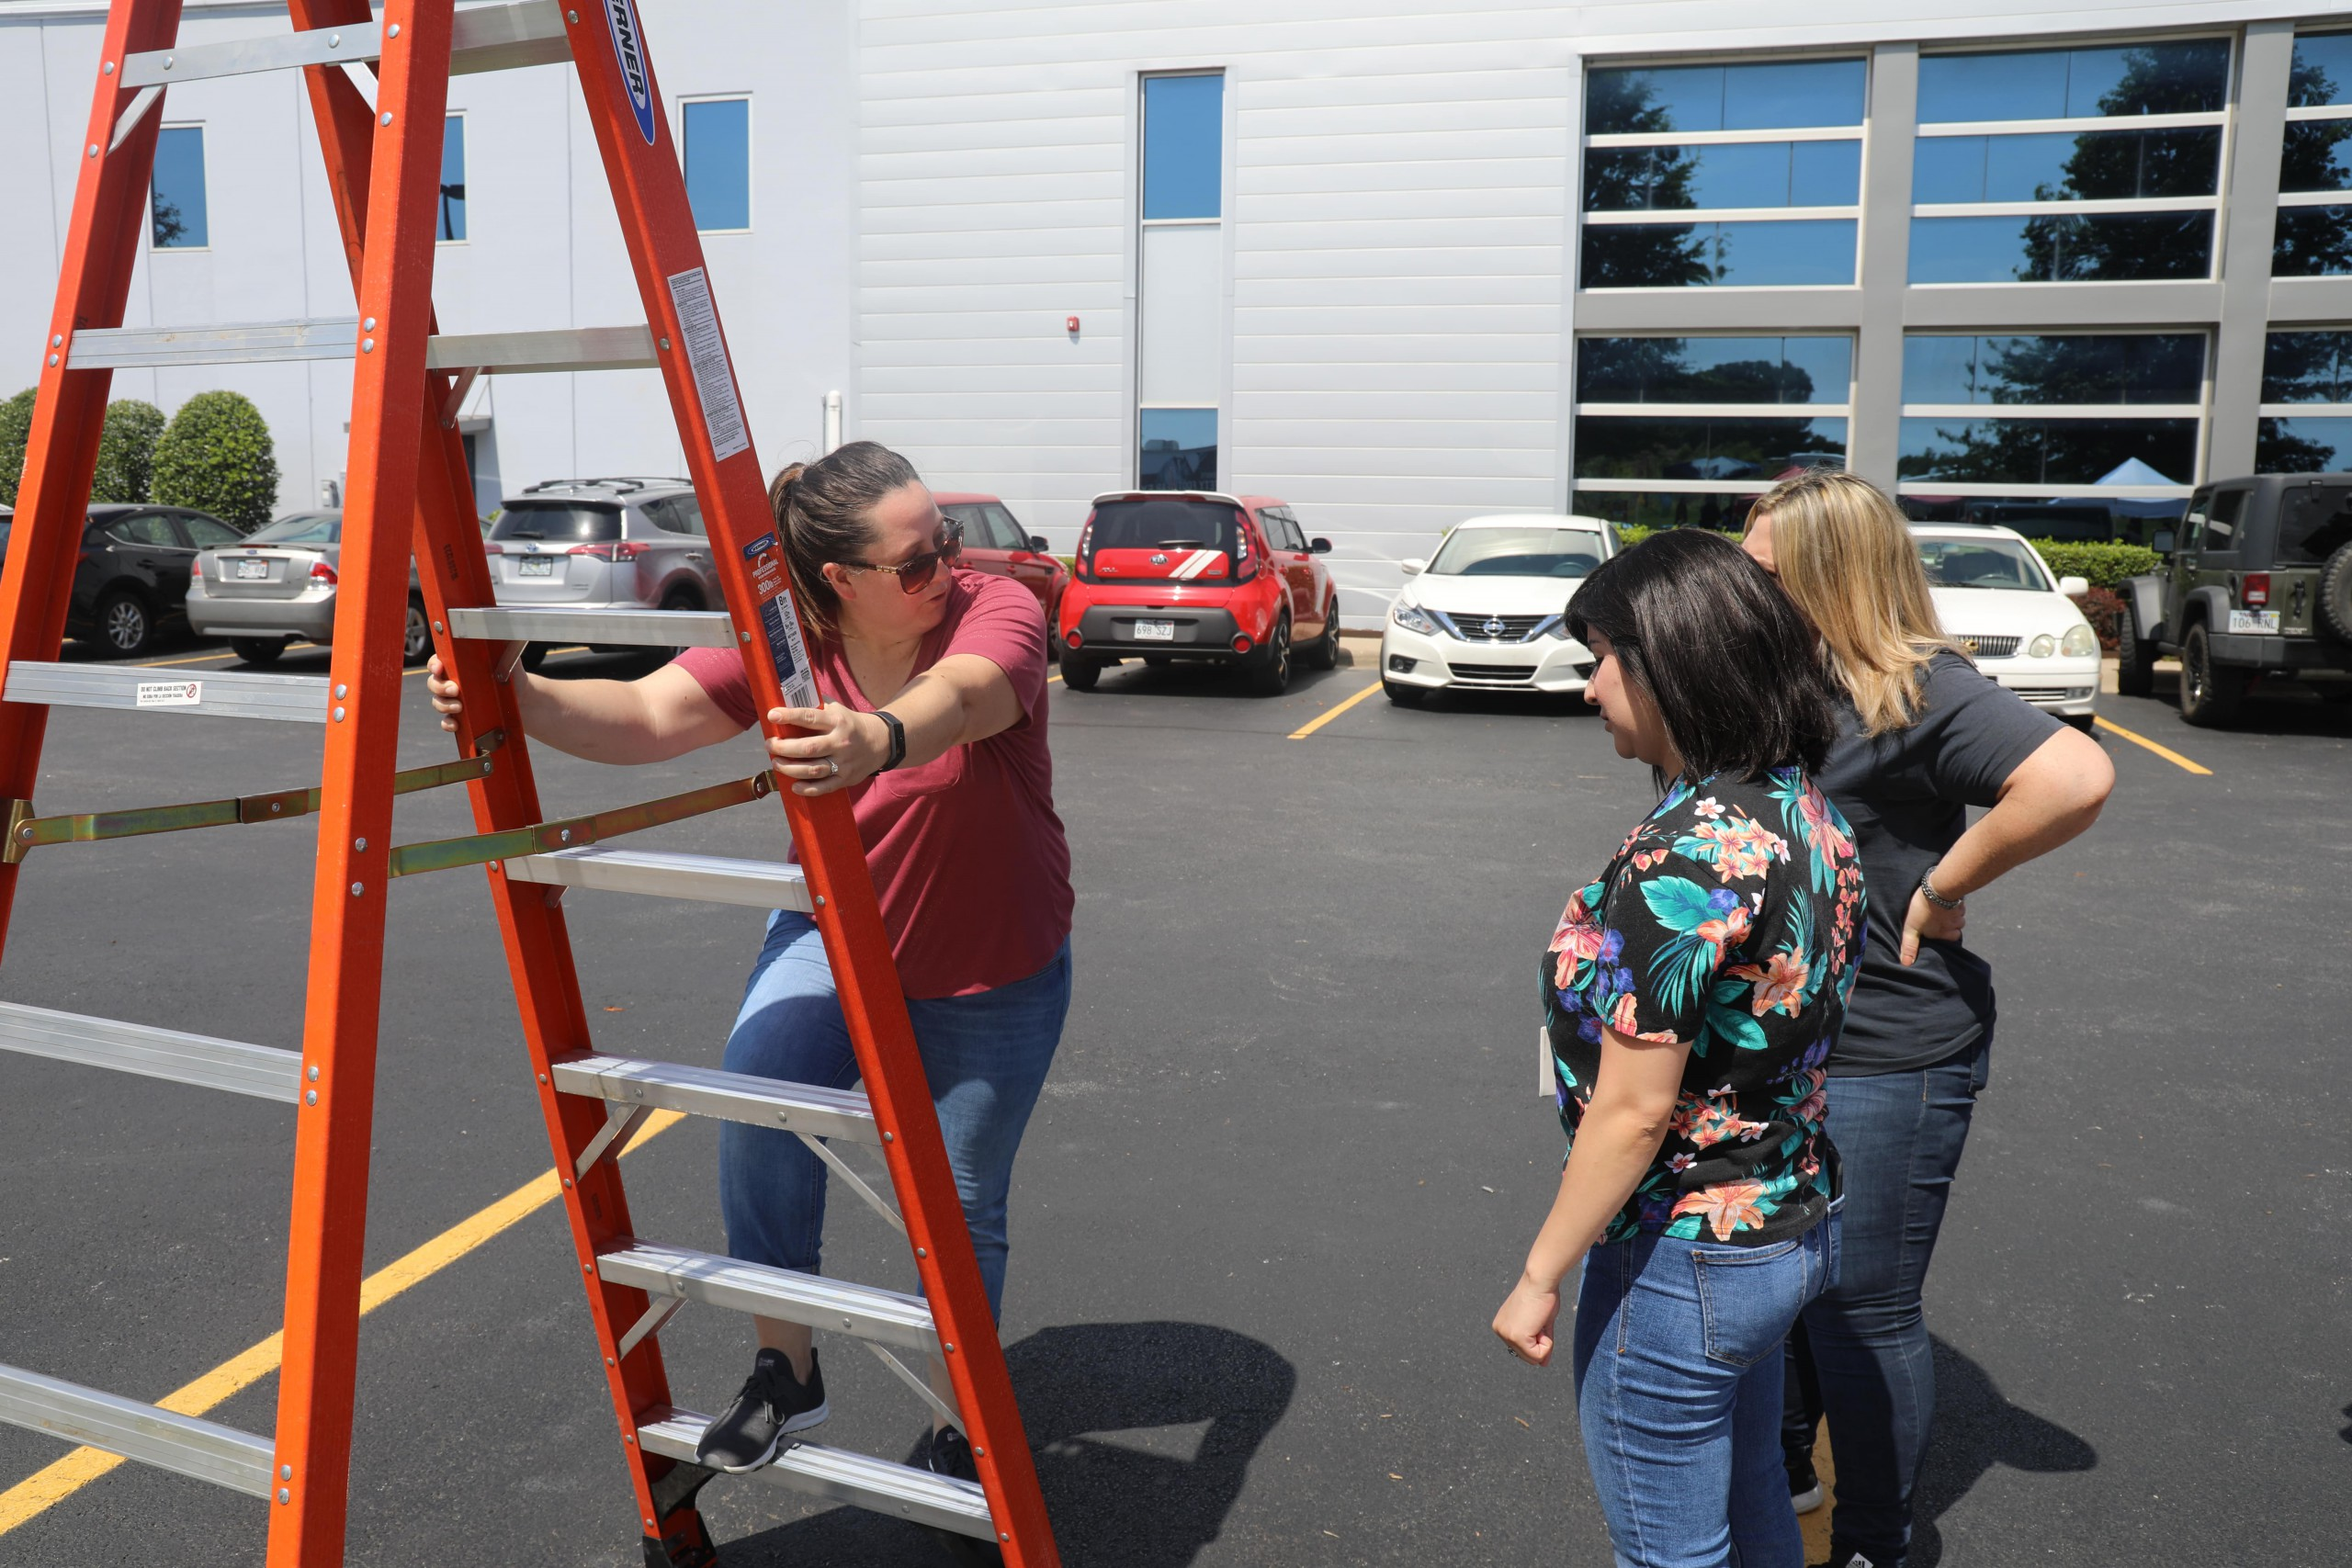 Ladder Safety Training at the Wachter Safety Fair